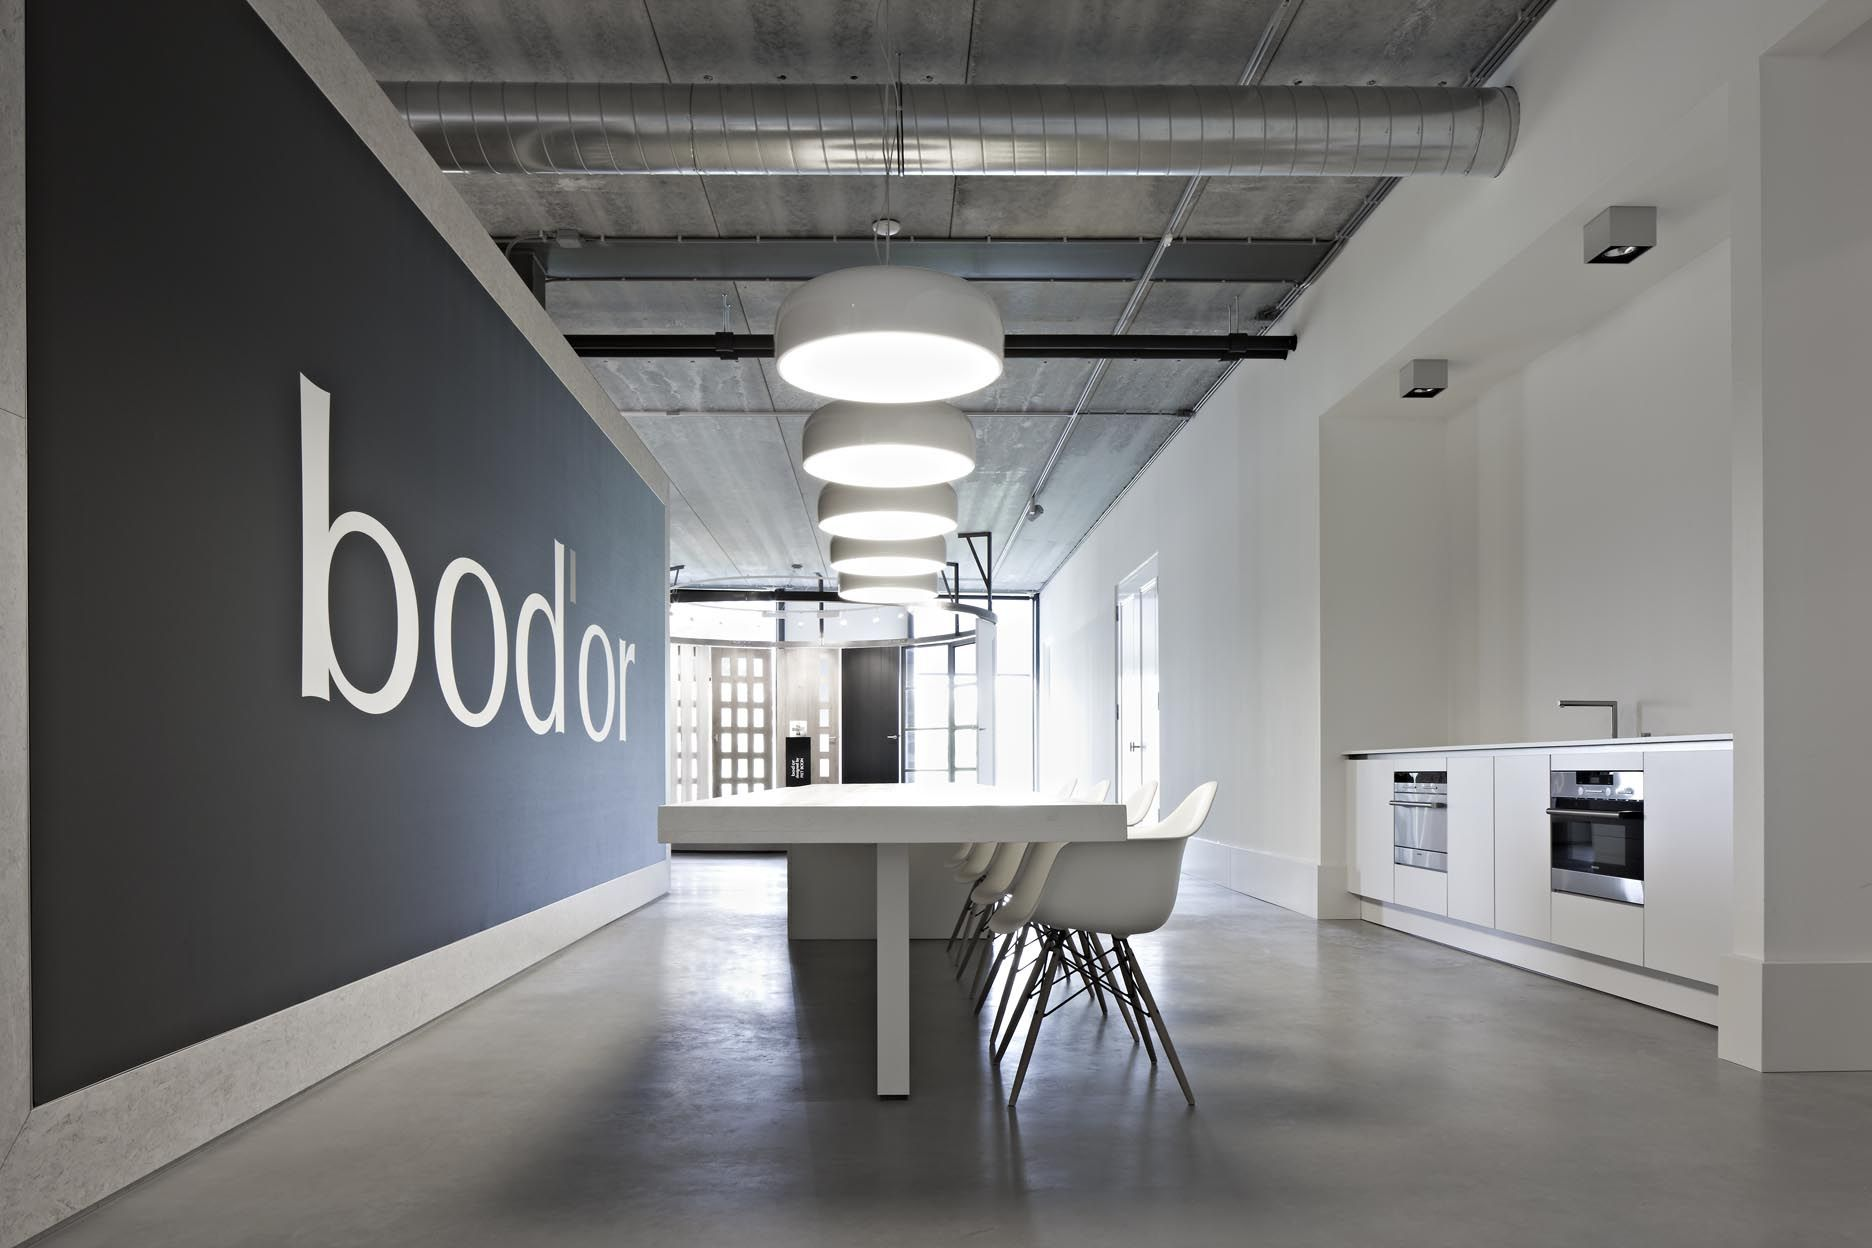 BOD'OR Amsterdam, July 2011. M+R designed a special presentation space for the doors by elevated round disks. Specially crafted steel frames ensure the construction of the door presentation and lighting.